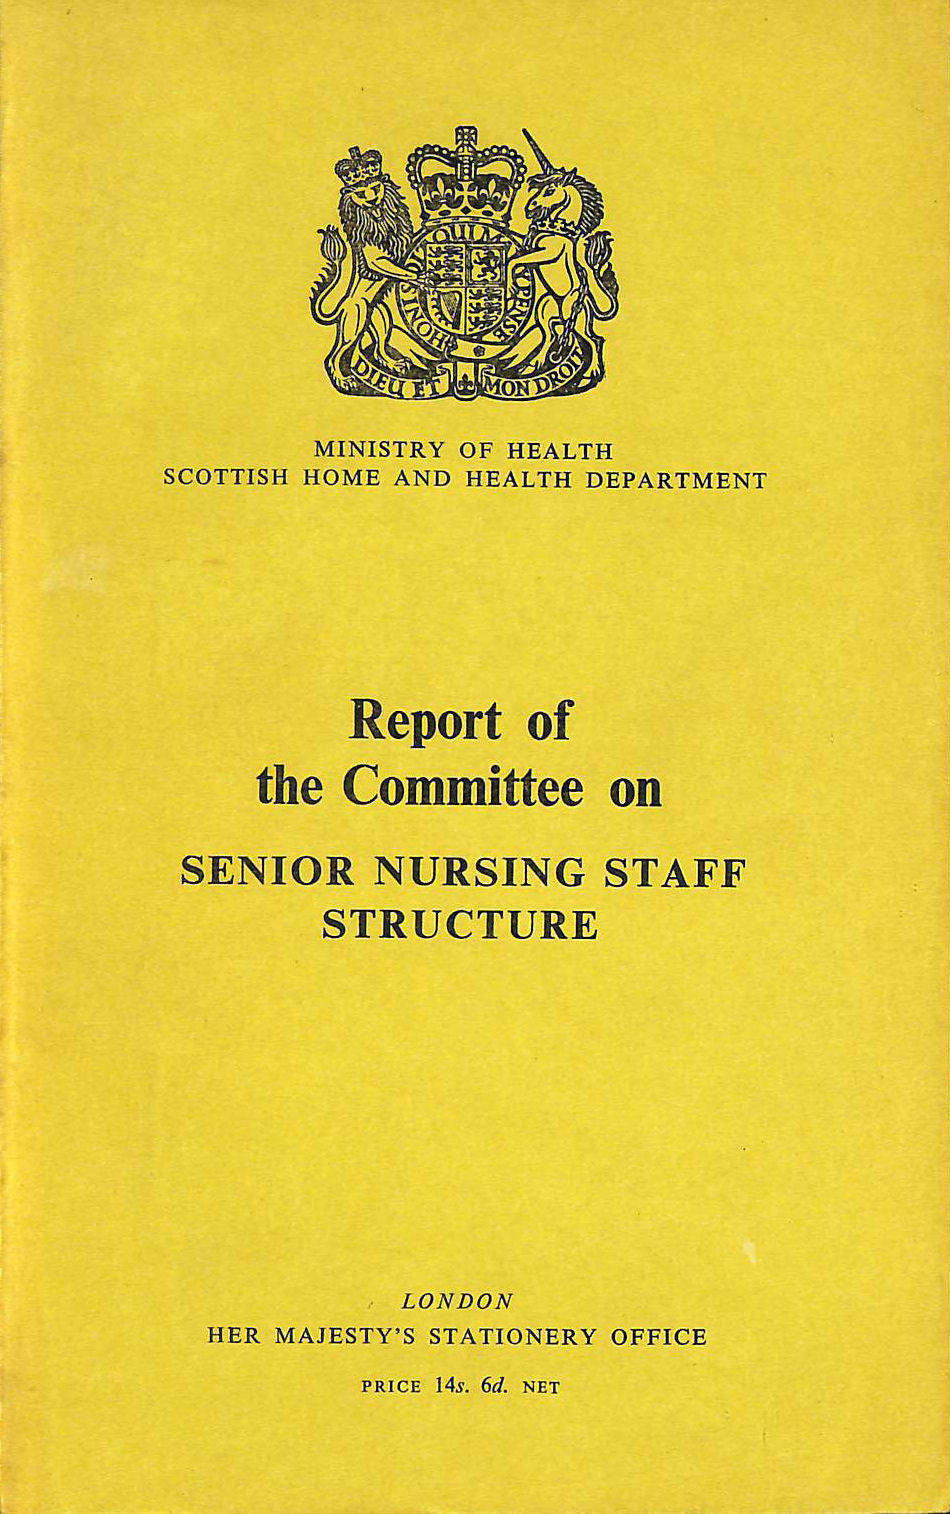 Image for Report of the Committee on Senior Nursing Staff Structure